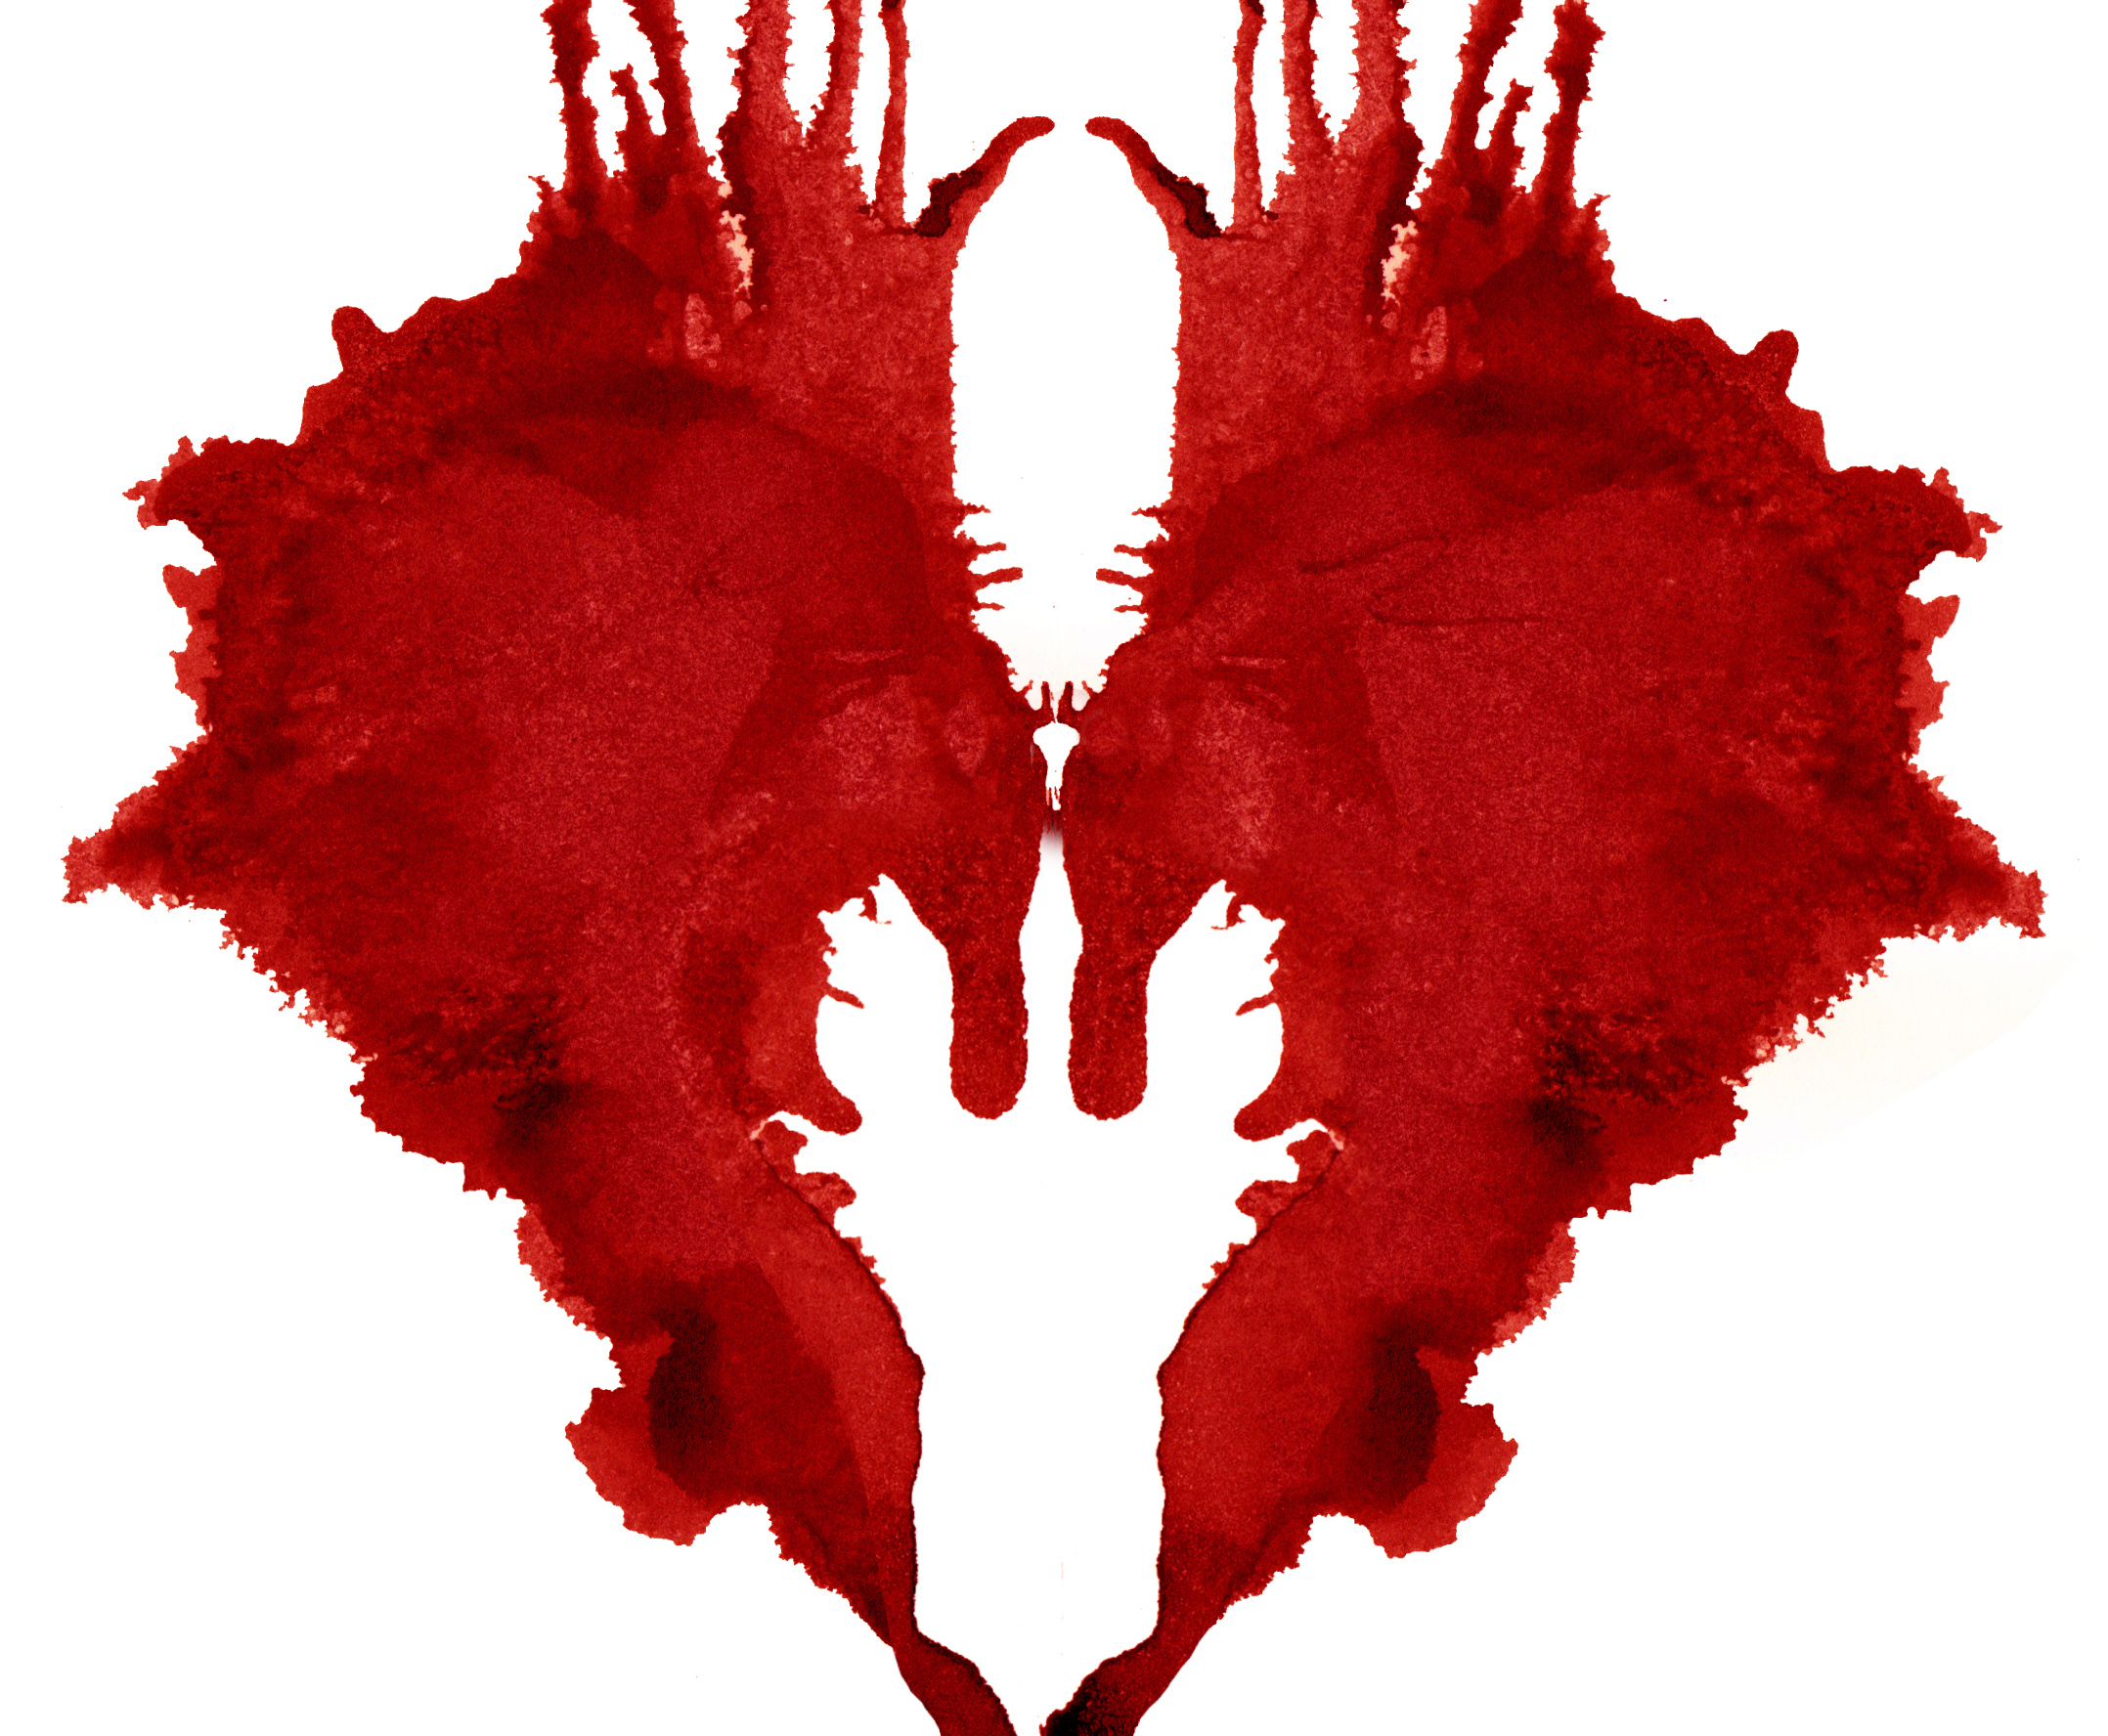 image from a poster of Romeo and Juliet of a bloody heart